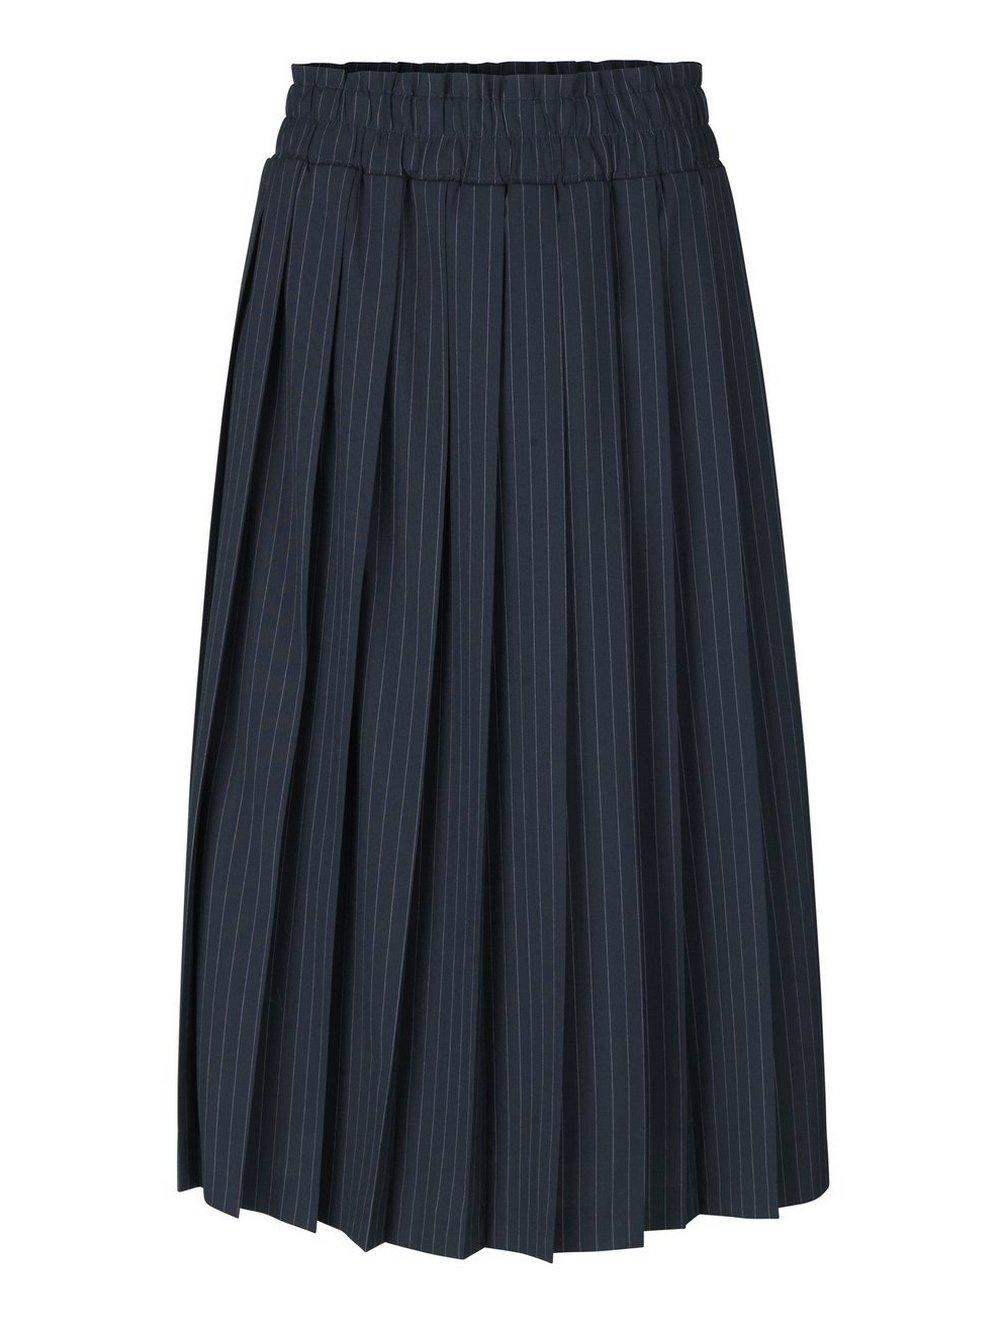 Serafina Pleated Skirt